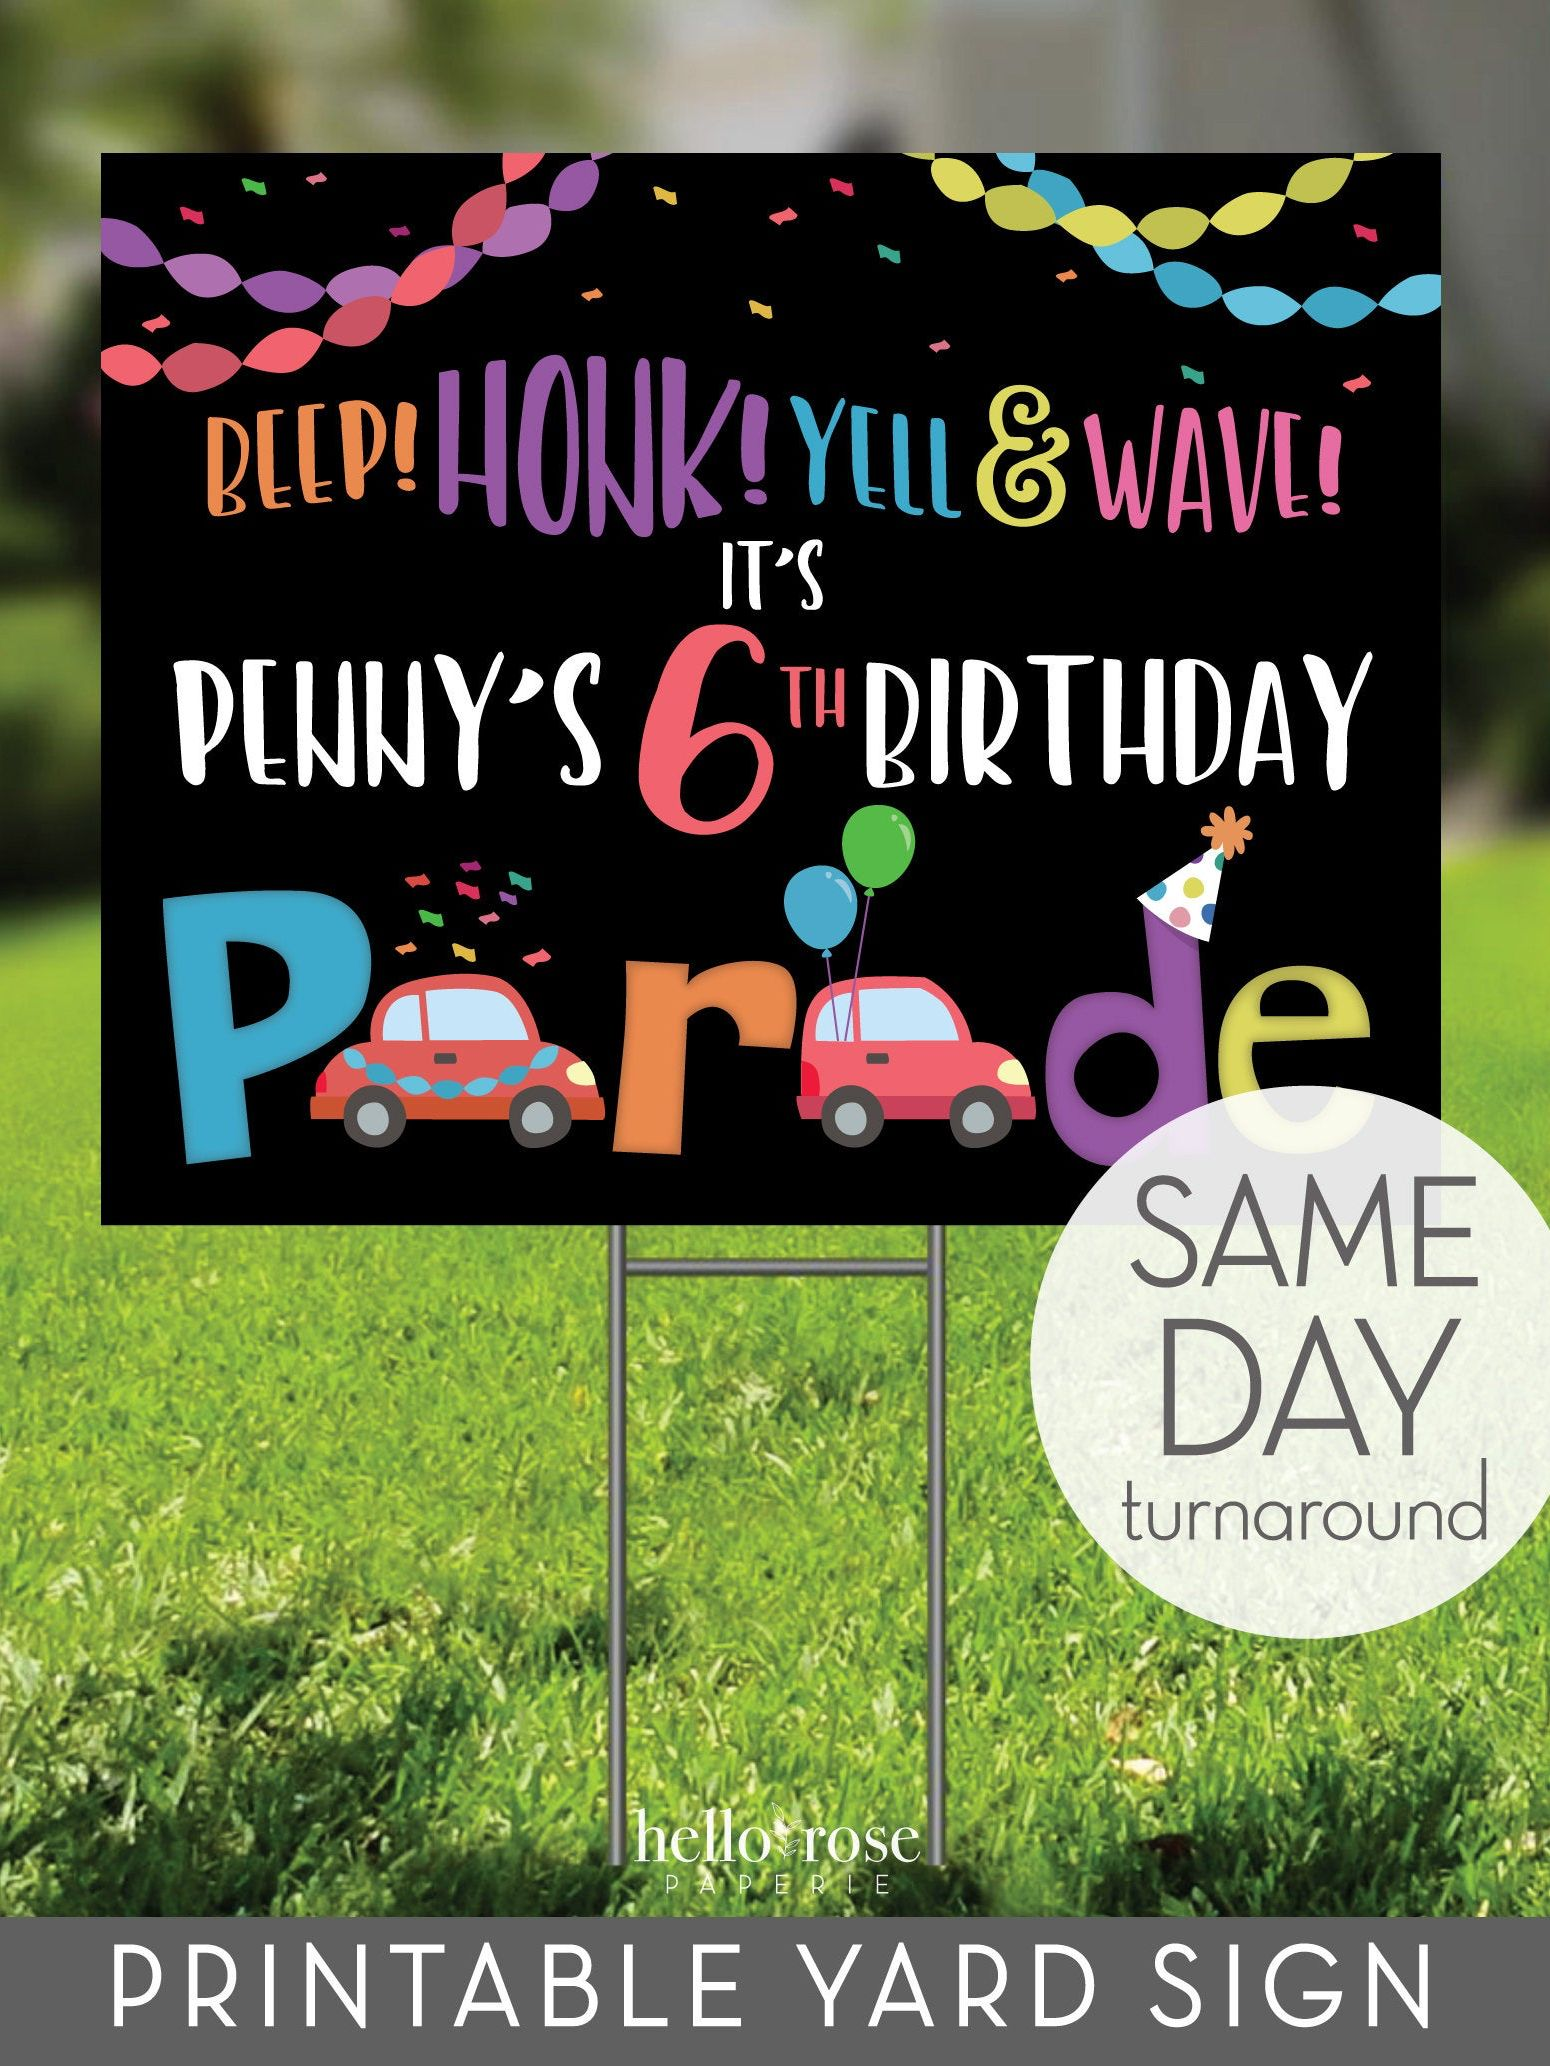 Printable Birthday Yard Sign For Birthday Parade Honk And Etsy In 2020 Birthday Yard Signs Happy Birthday Yard Signs Birthday Yard Signs Diy